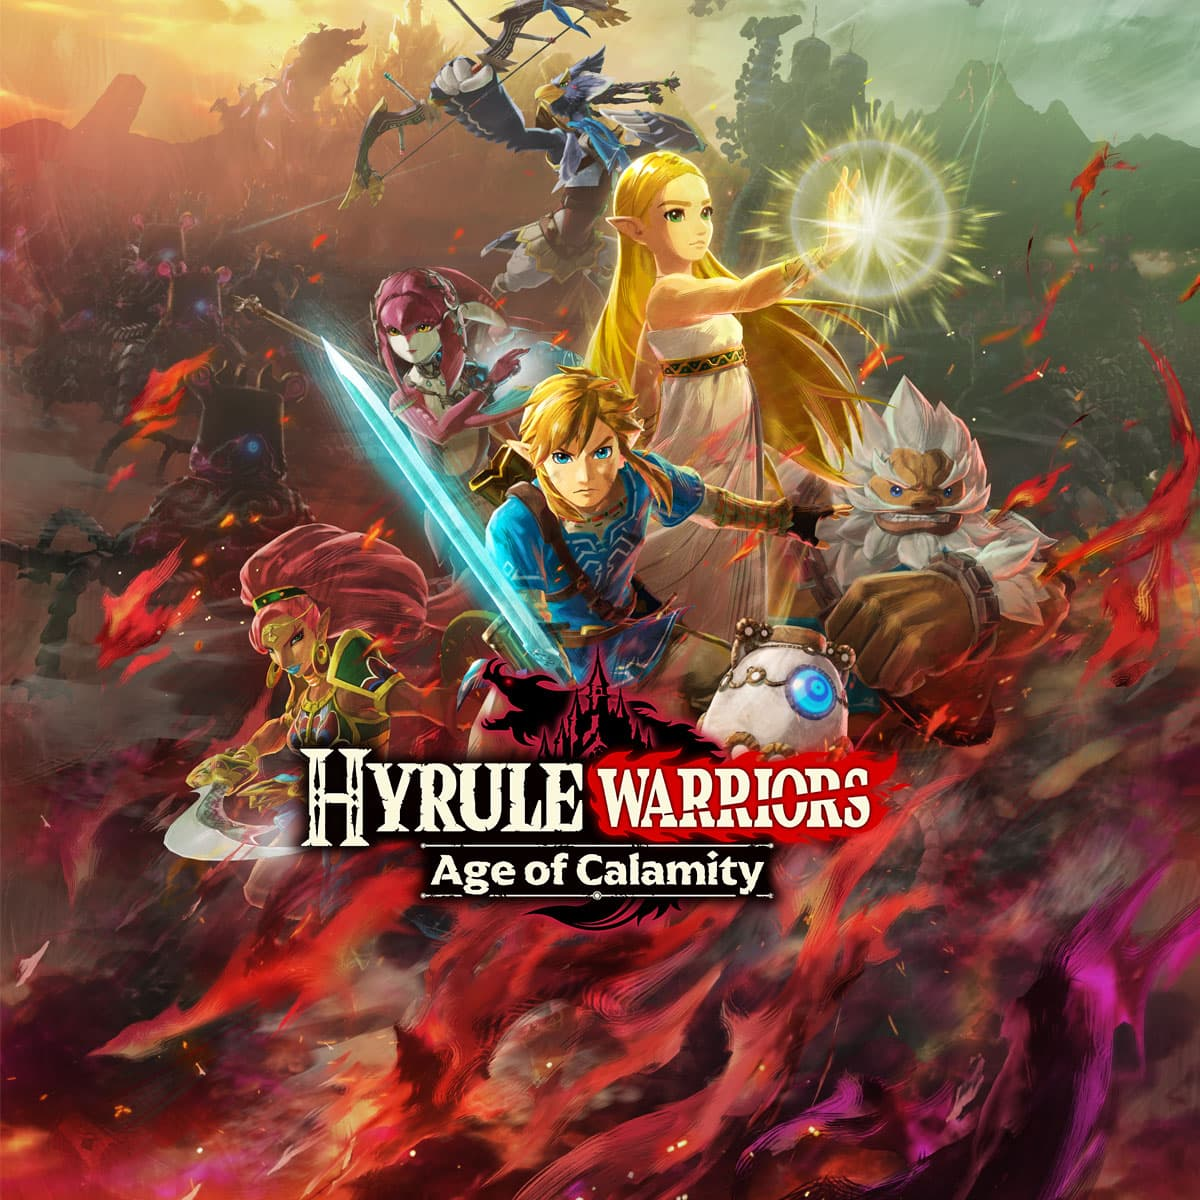 SPOILER FREE REVIEW: Hyrule Warriors: Age of Calamity